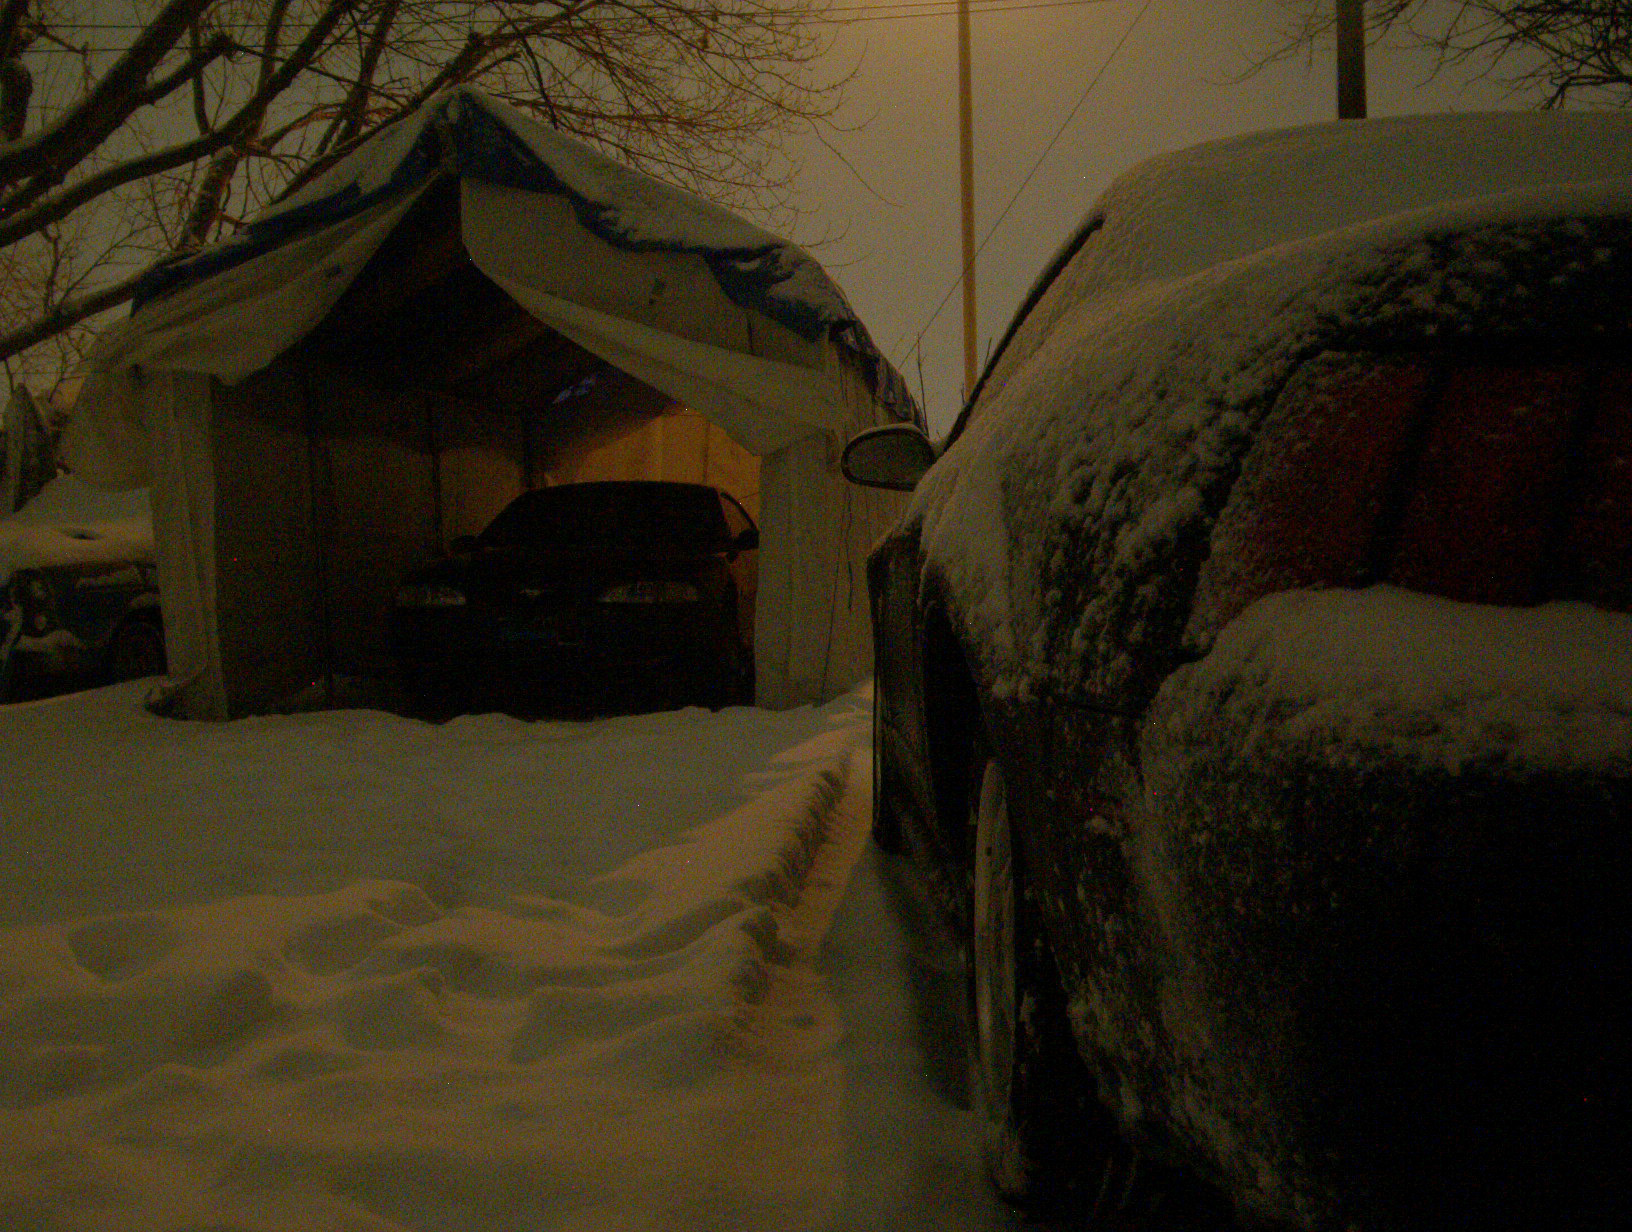 Click image for larger version  Name:snow05a 003.jpg Views:75 Size:947.5 KB ID:11691